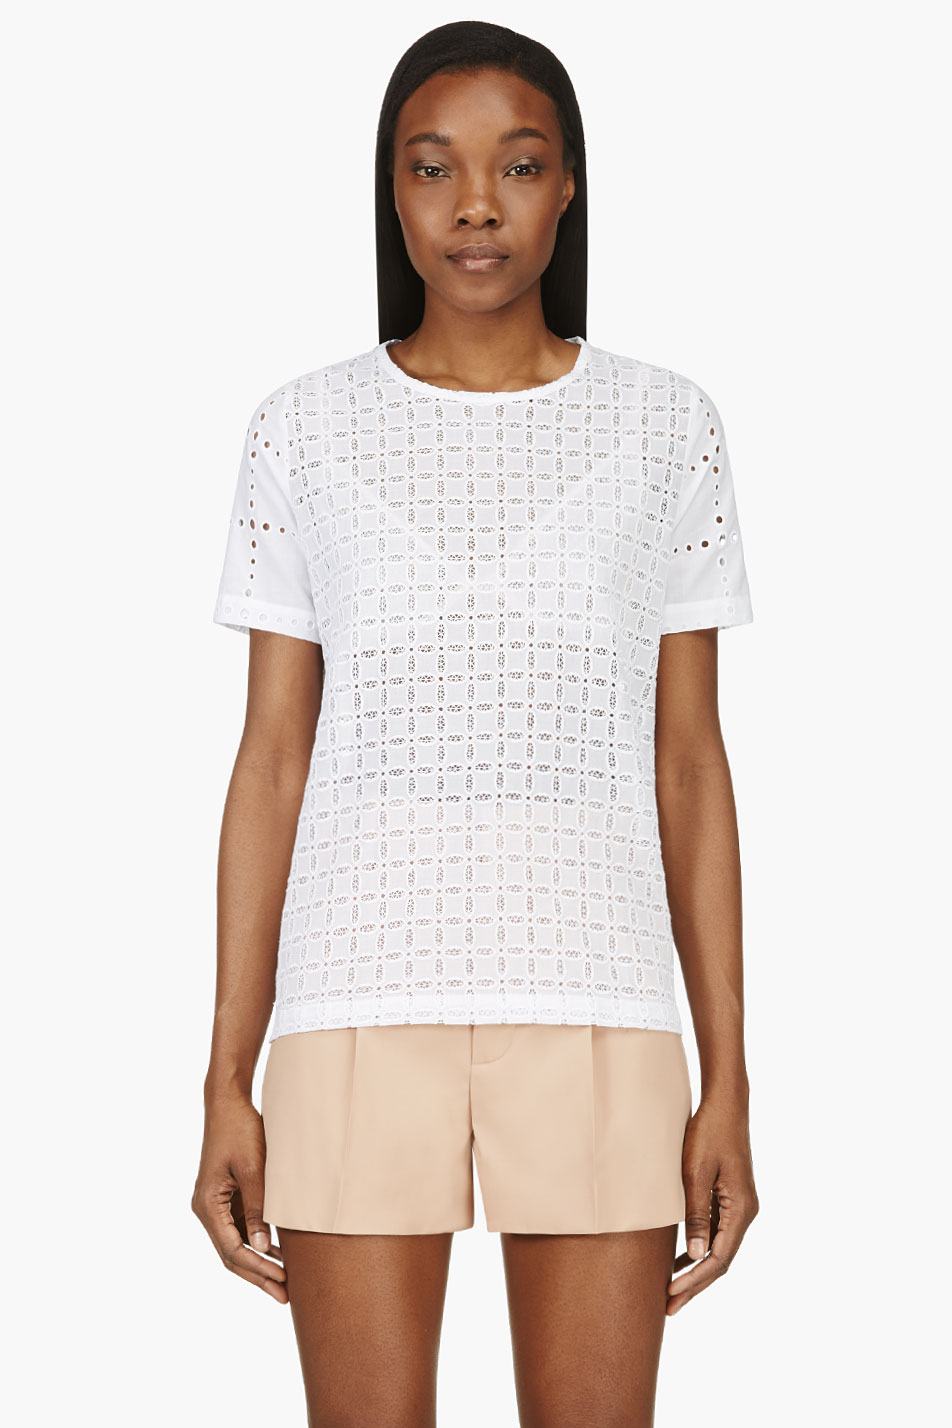 Shirt in an airy cotton weave with a collar, concealed buttons down the front and long sleeves with buttoned cuffs. Scalloped hem with broderie anglaise that is slightly shorter at the sides. Composition.